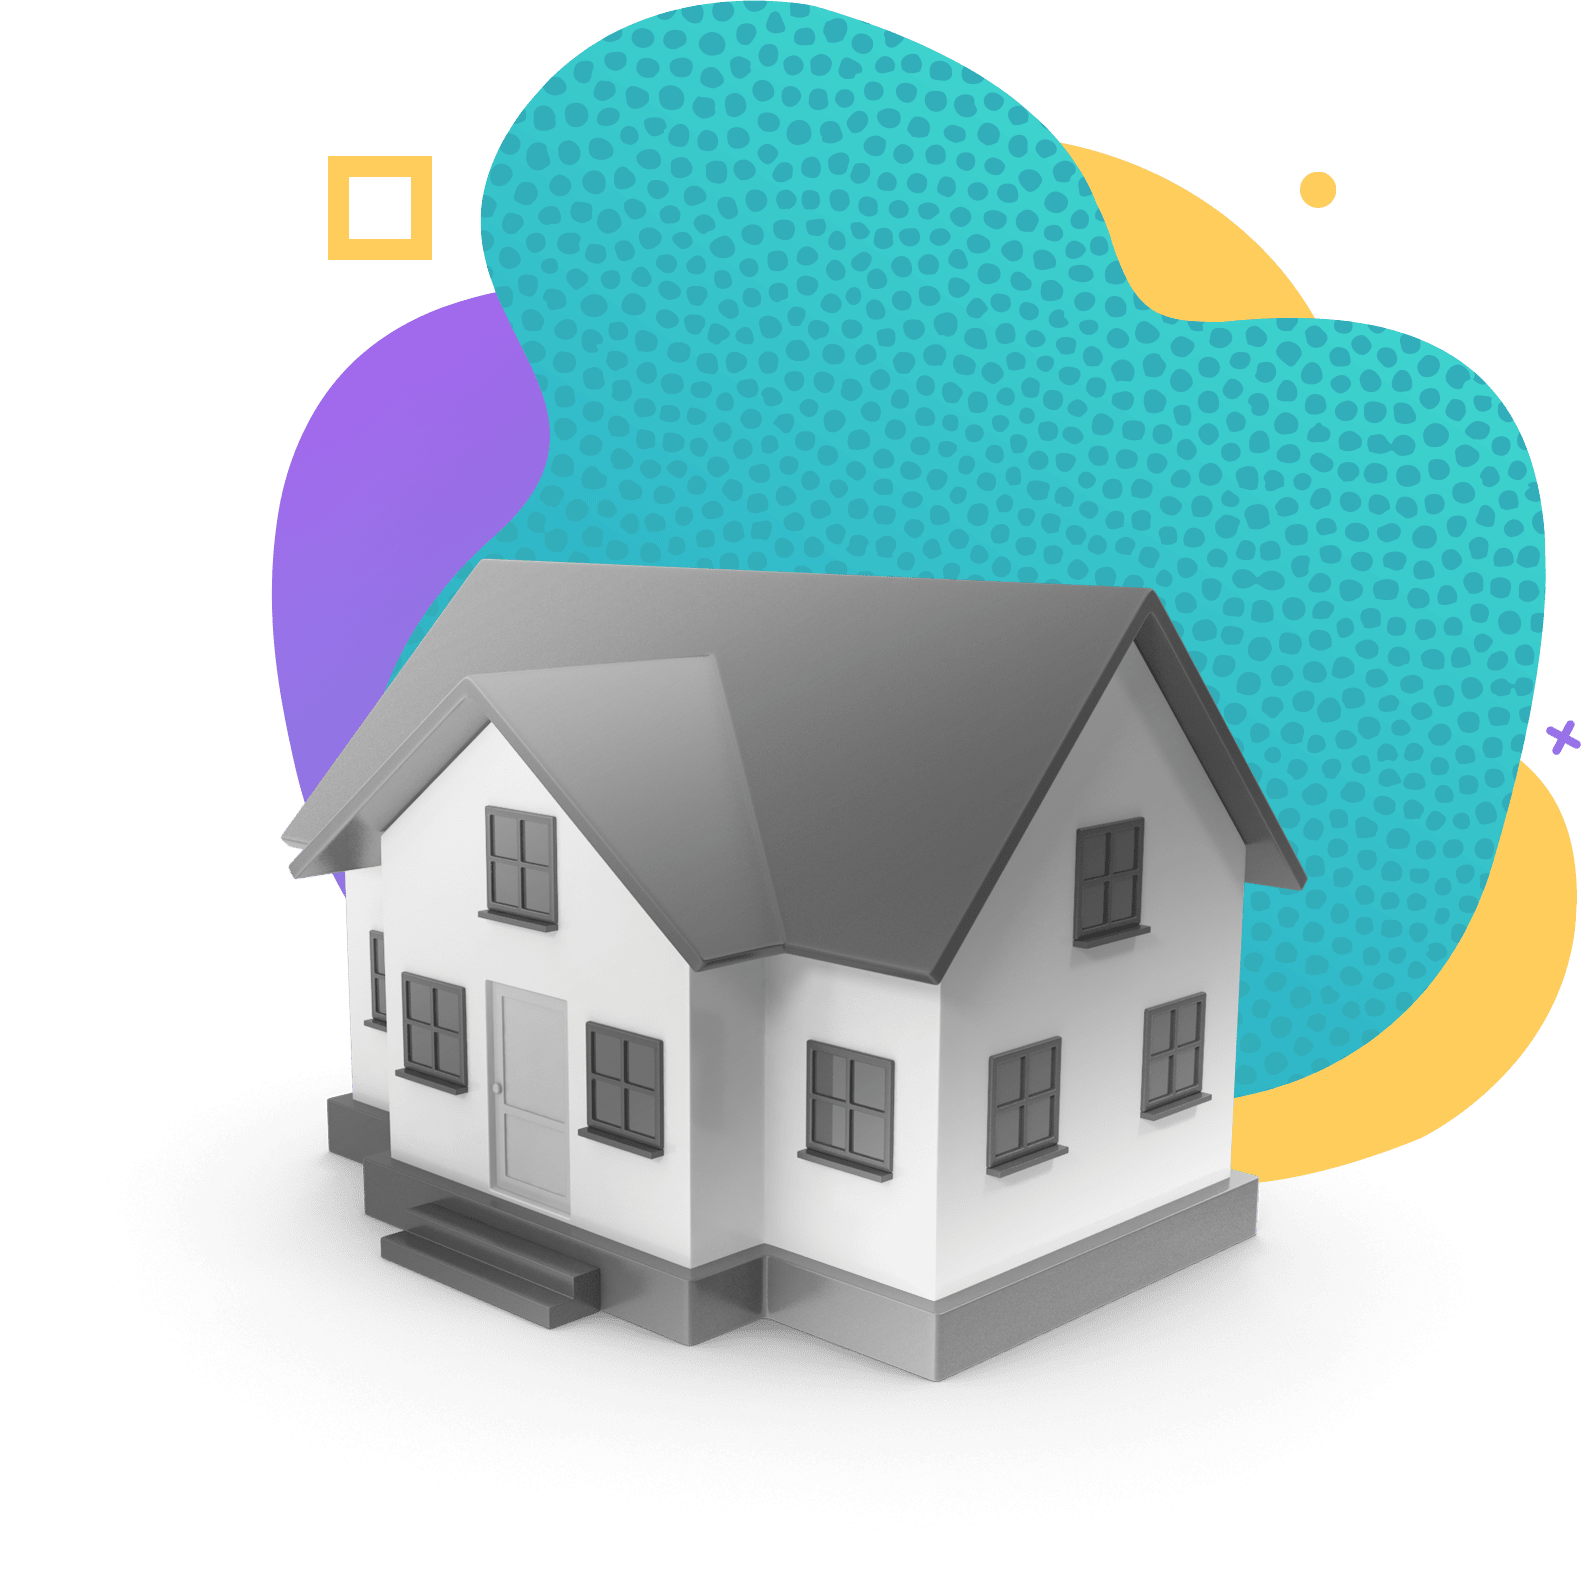 House icon sitting on top of color blobs